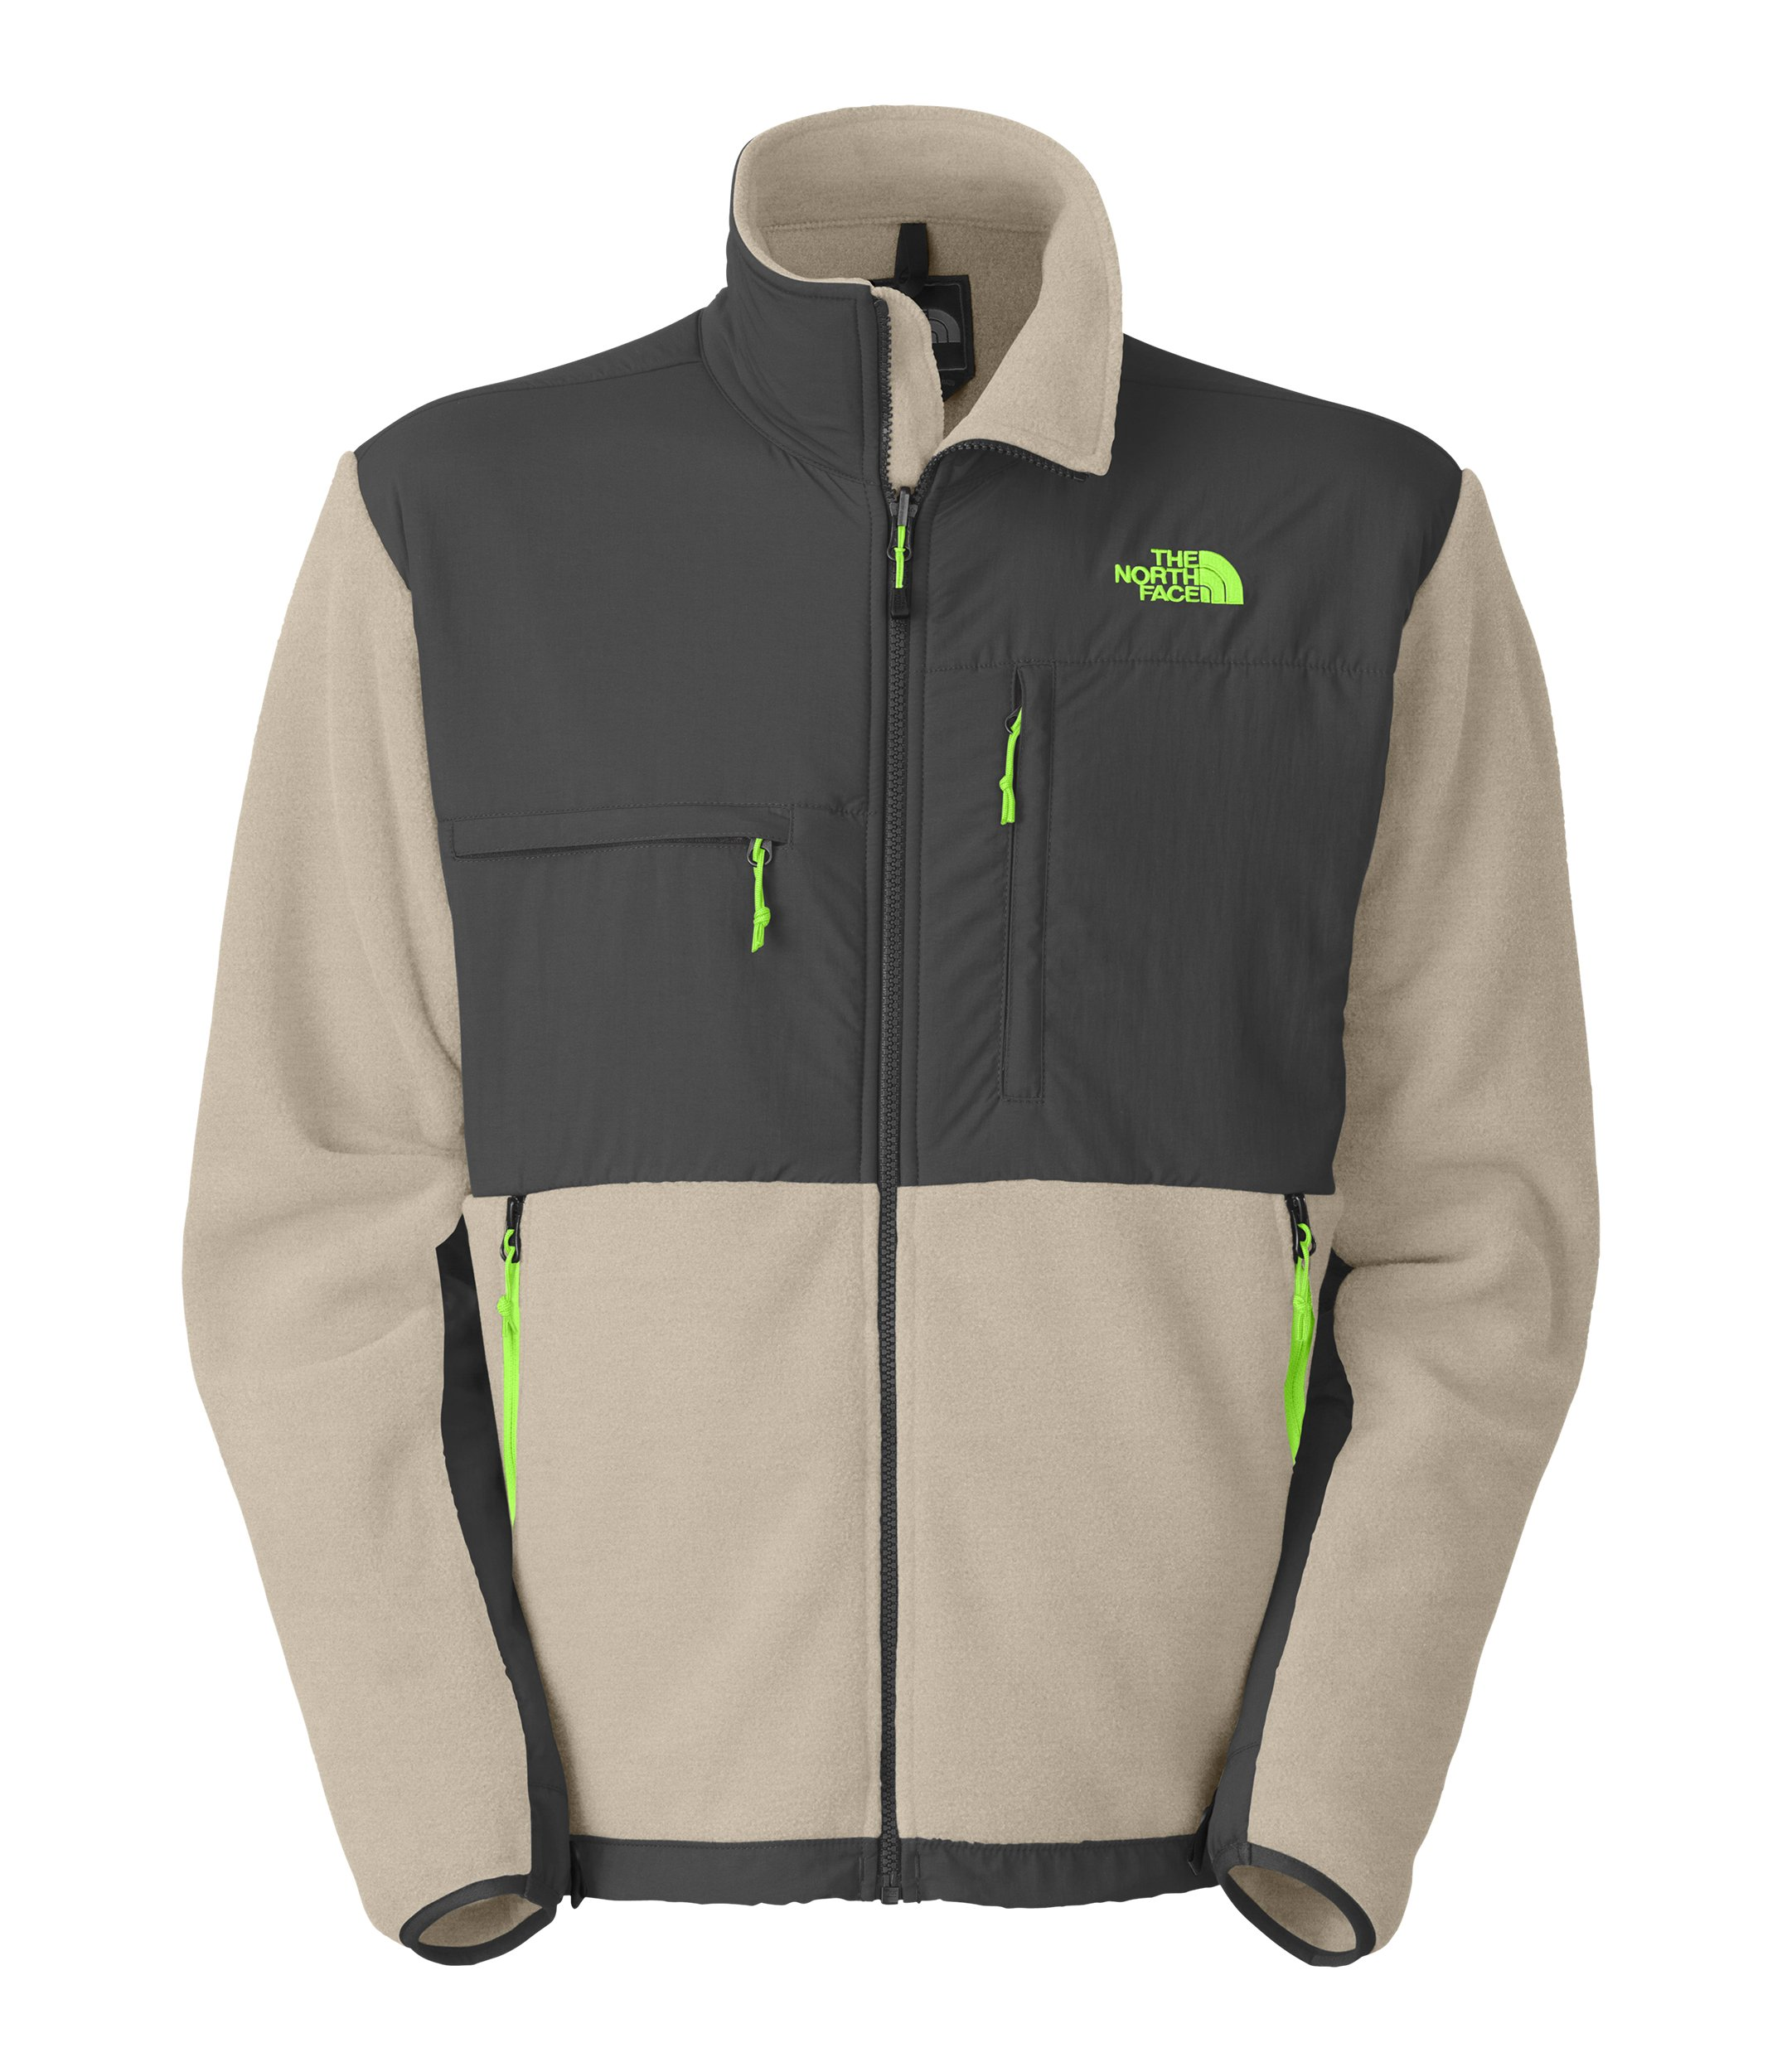 4695c6b73268 Galleon - The North Face Men s Full Zip Denali Jacket